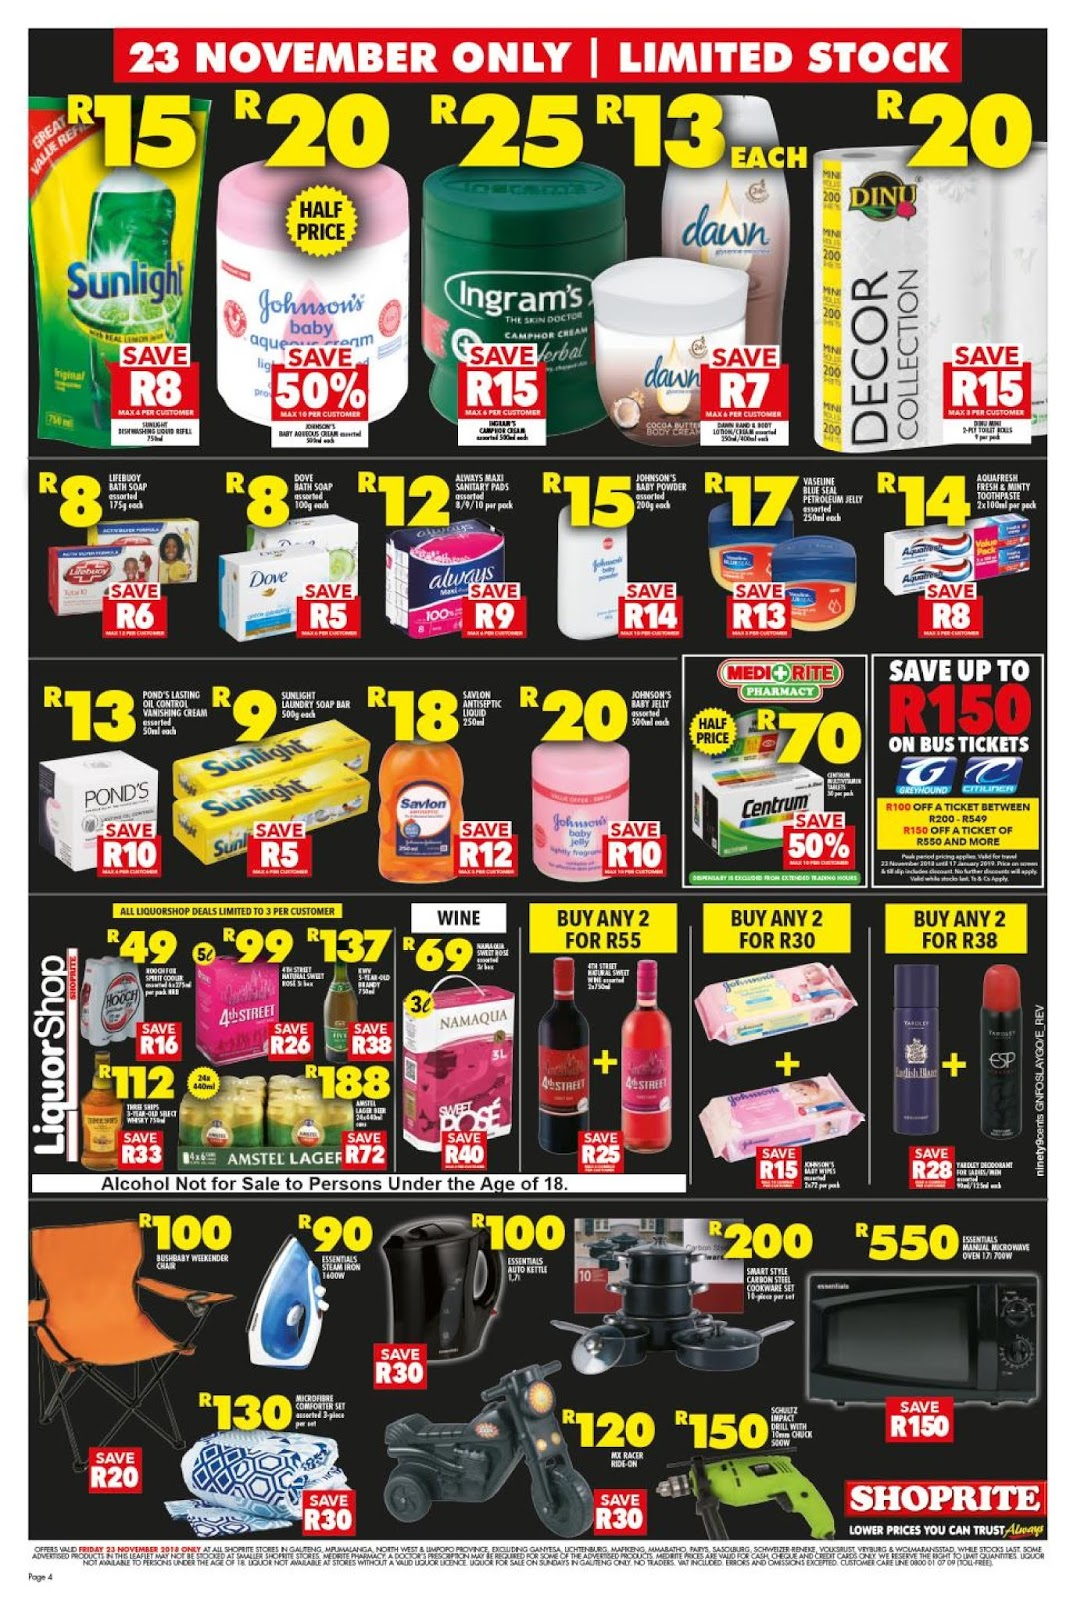 Shoprite Gauteng Black Friday Deals 2018 Blackfriday